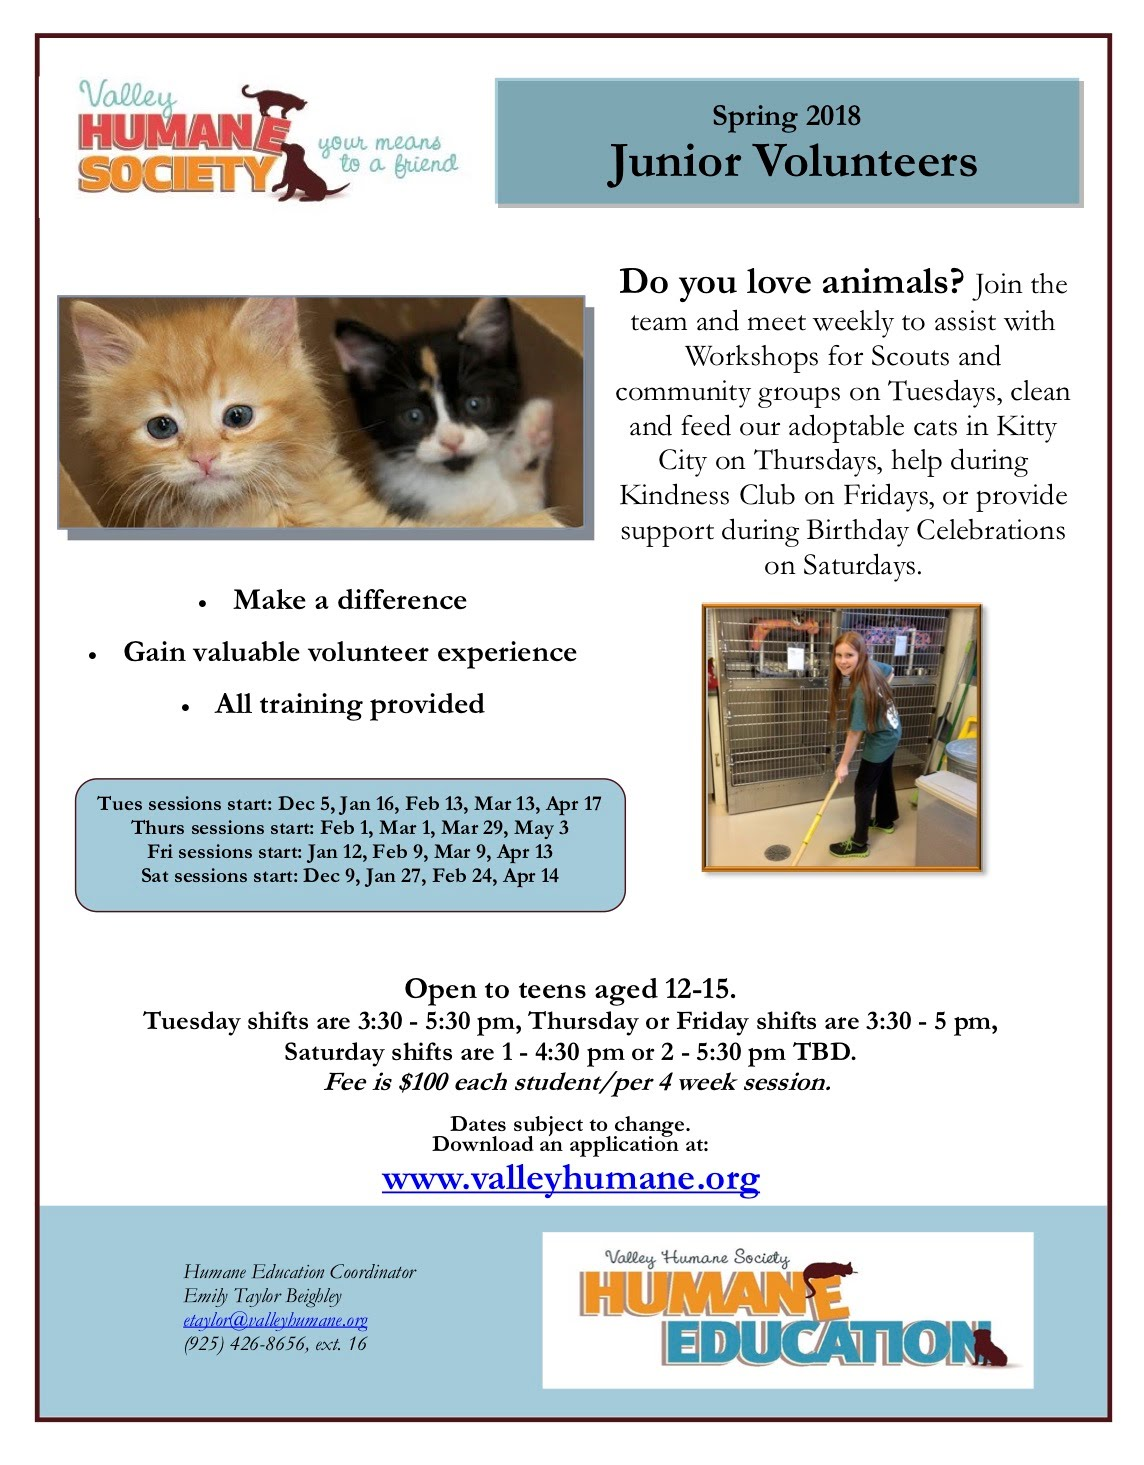 https://valleyhumane.org/humane-education/teens/